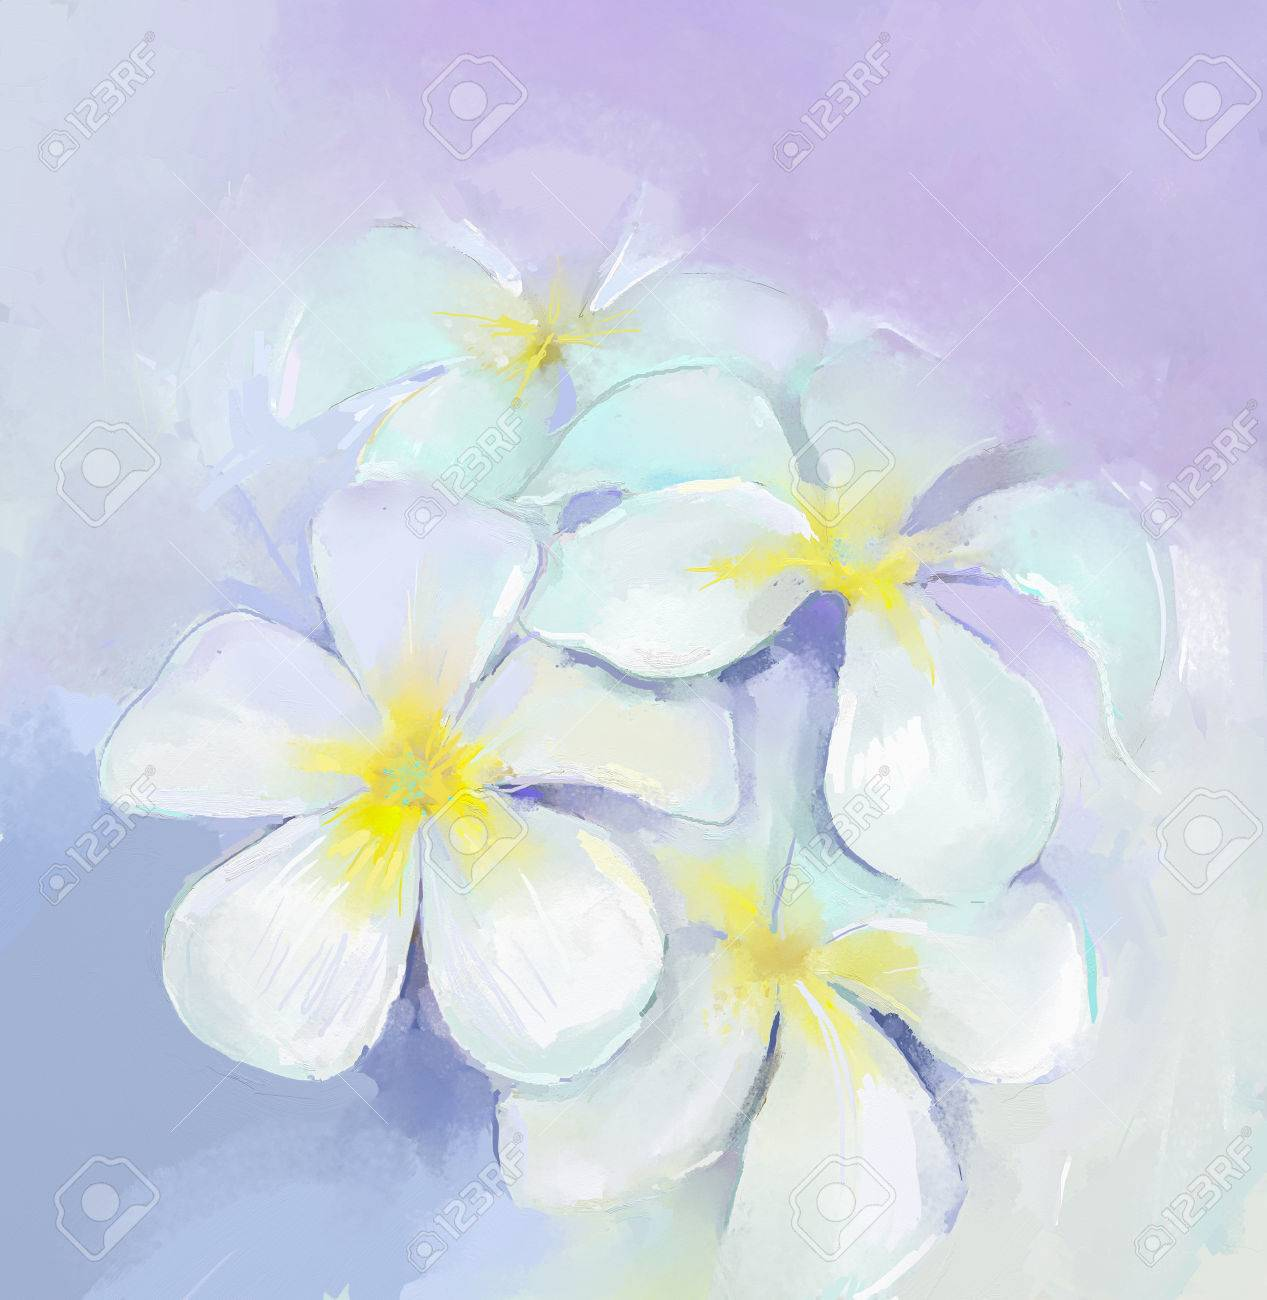 Plumeria frangipani oil paintingwhite flowers oil painting stock plumeria frangipani oil paintingwhite flowers oil painting stock photo 43543508 mightylinksfo Gallery